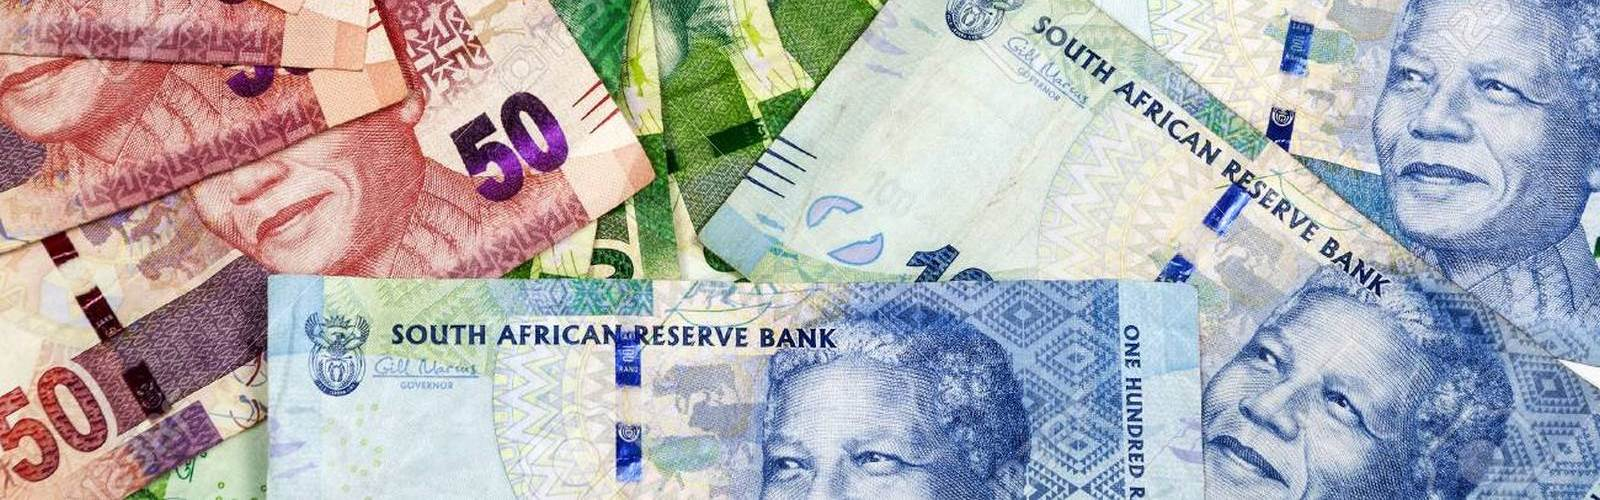 Buy Counterfeit Rand Banknotes online